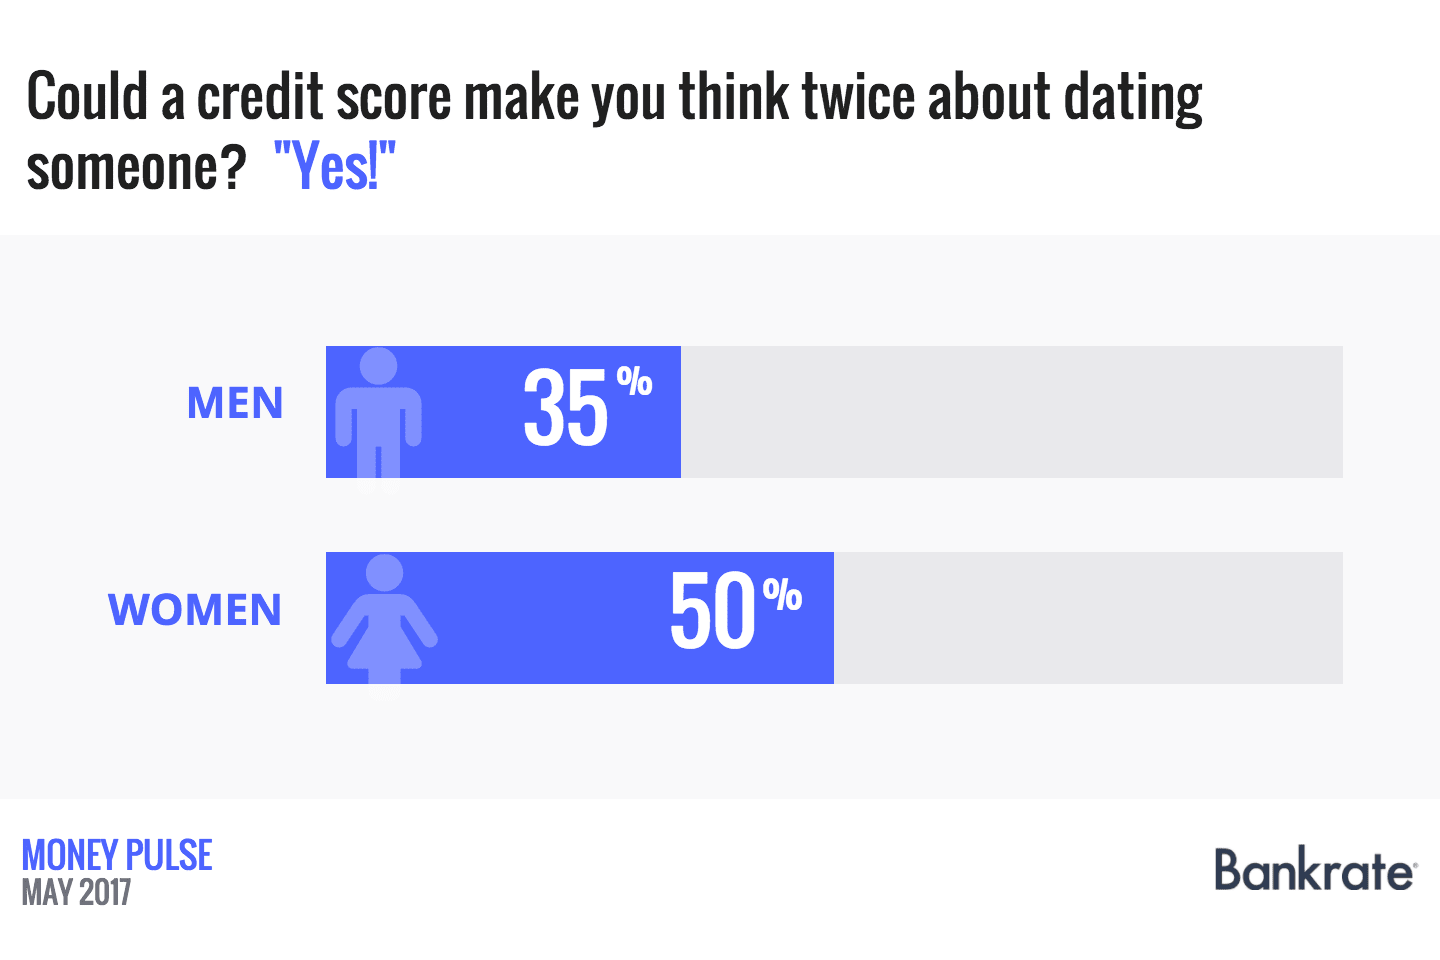 Could a credit score make you think twice about dating someone?